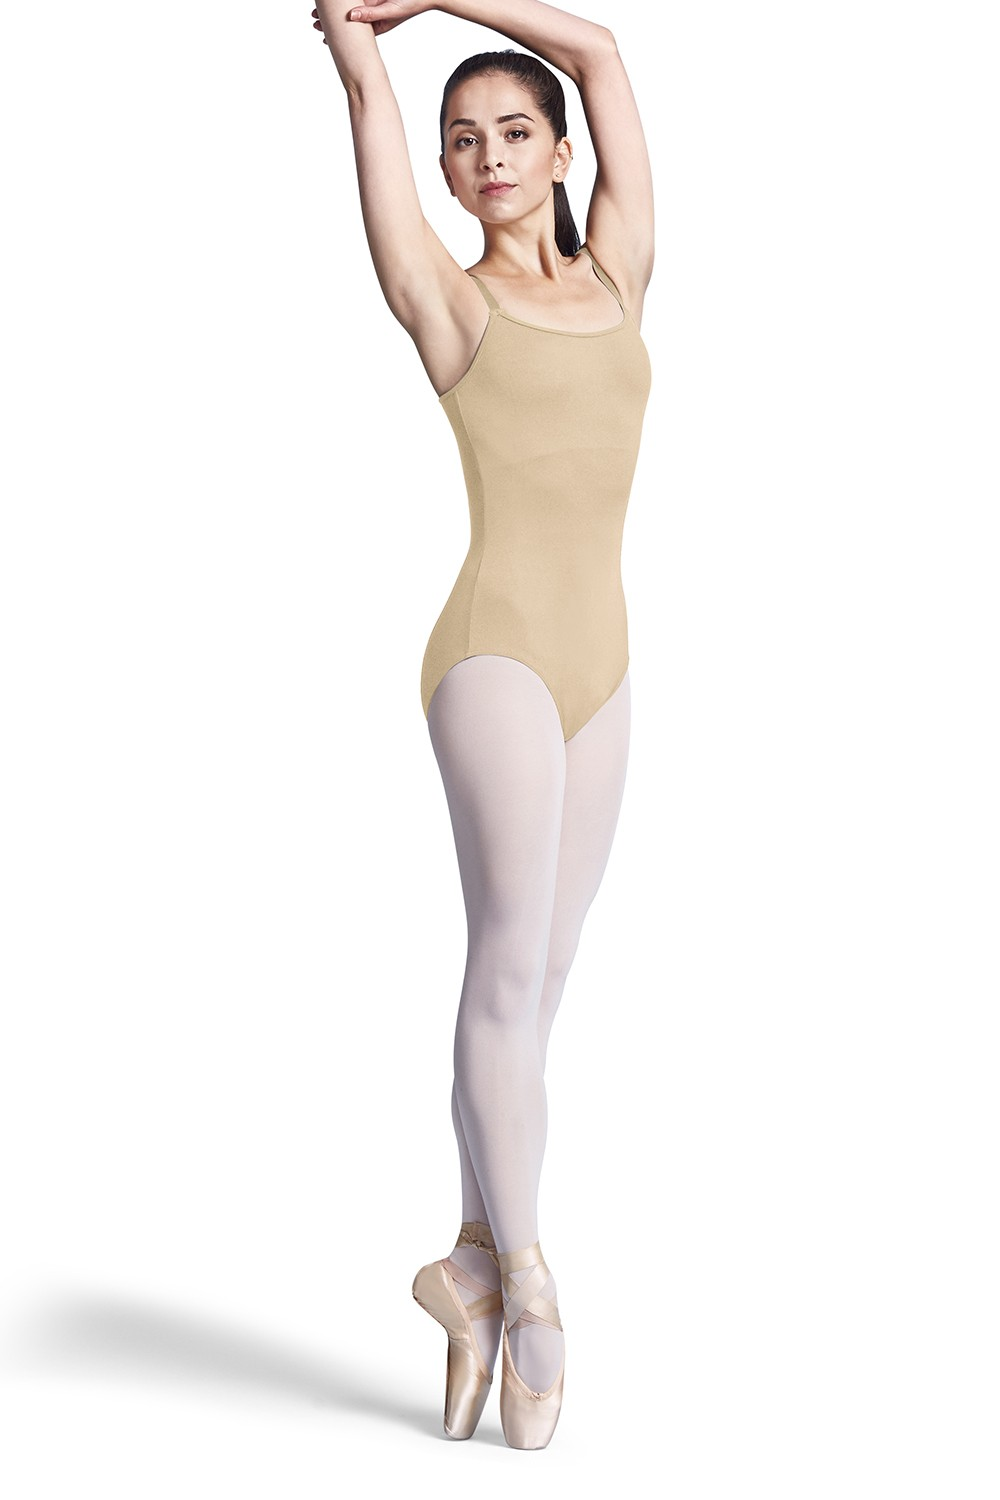 Nylon Adj Strap Leotard With Bra Women's Dance Leotards